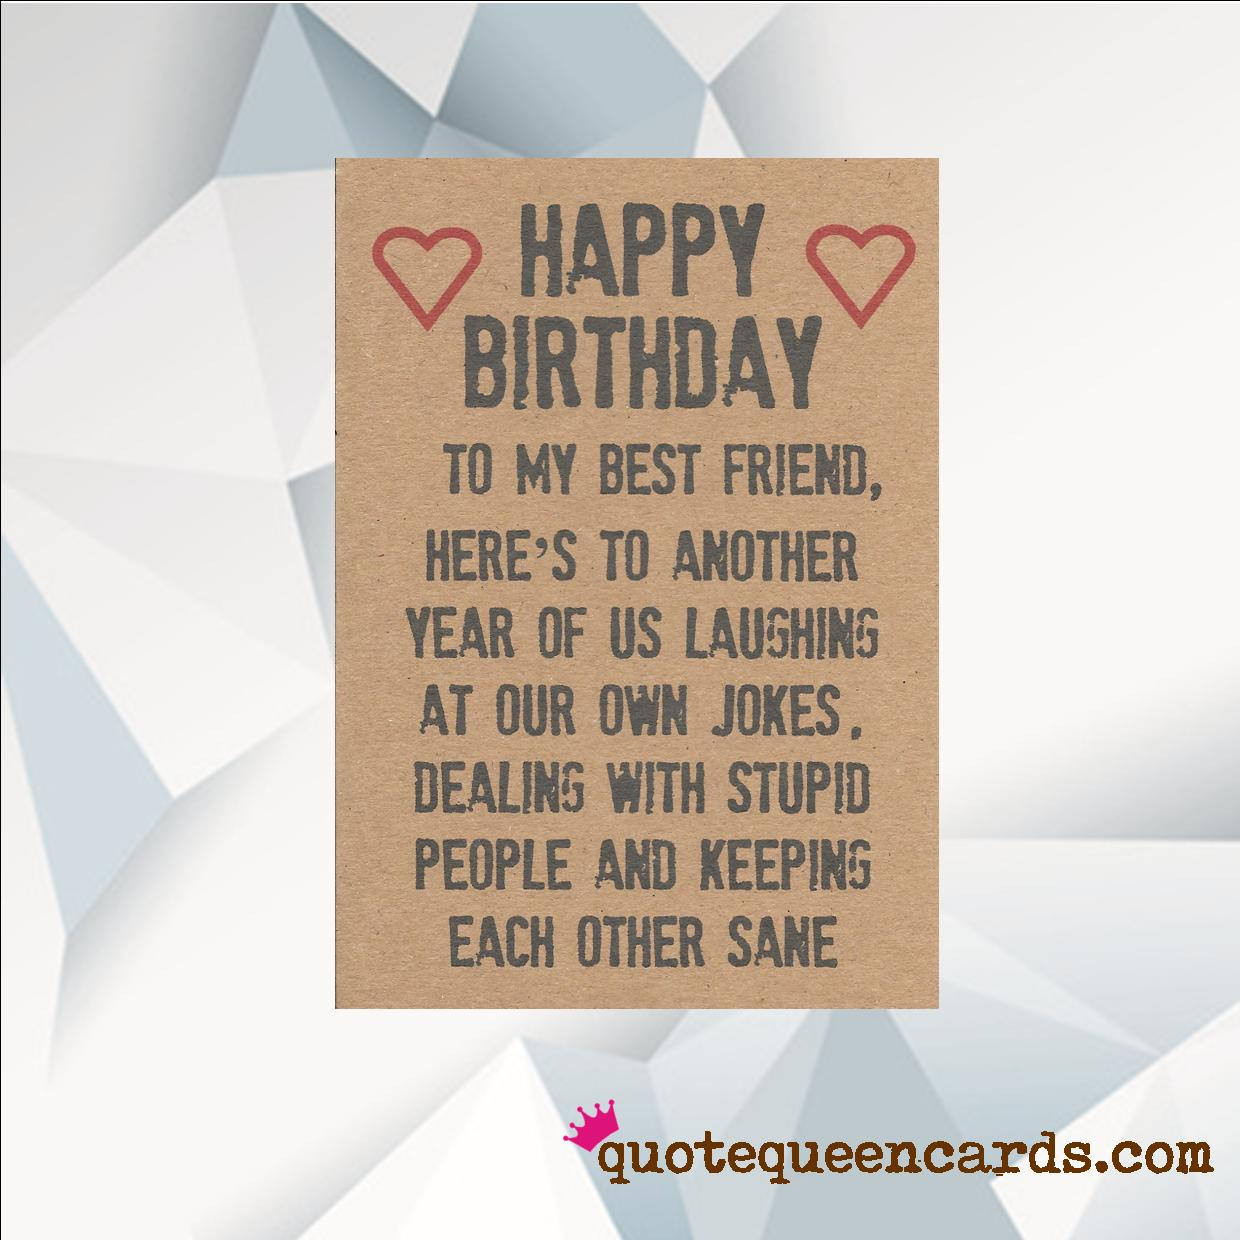 Best ideas about Happy Birthday To Friend Funny . Save or Pin Happy Birthday BEST FRIEND Funny Birthday Card For Friend Now.